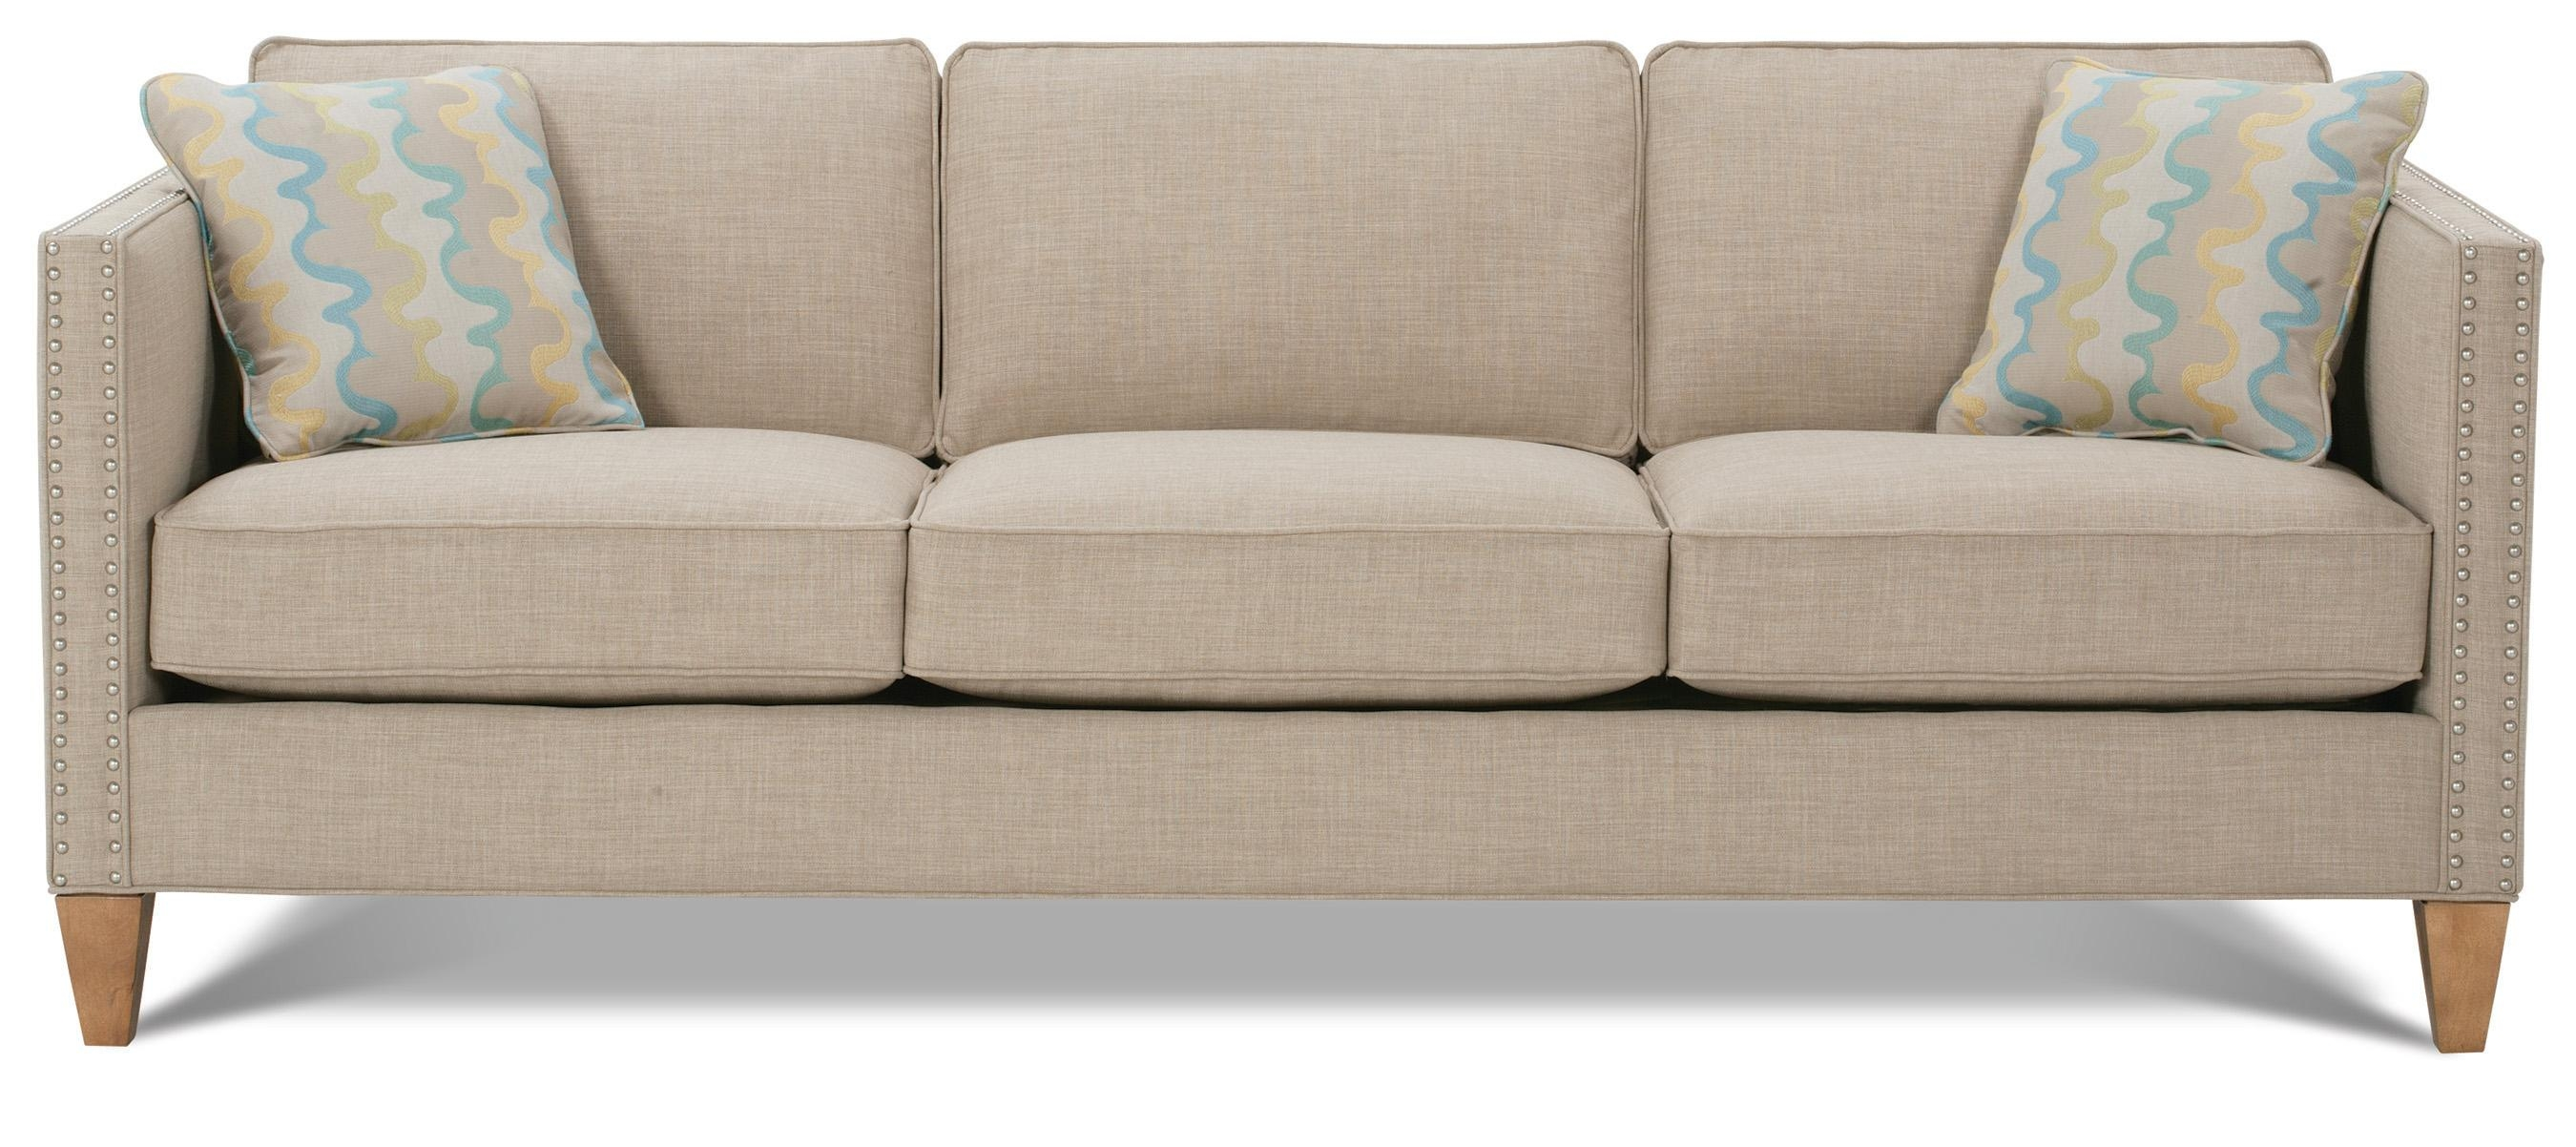 Why Your Home Need A Three Seater Sofa | All White Background For Three Seater Sofas (Image 20 of 20)